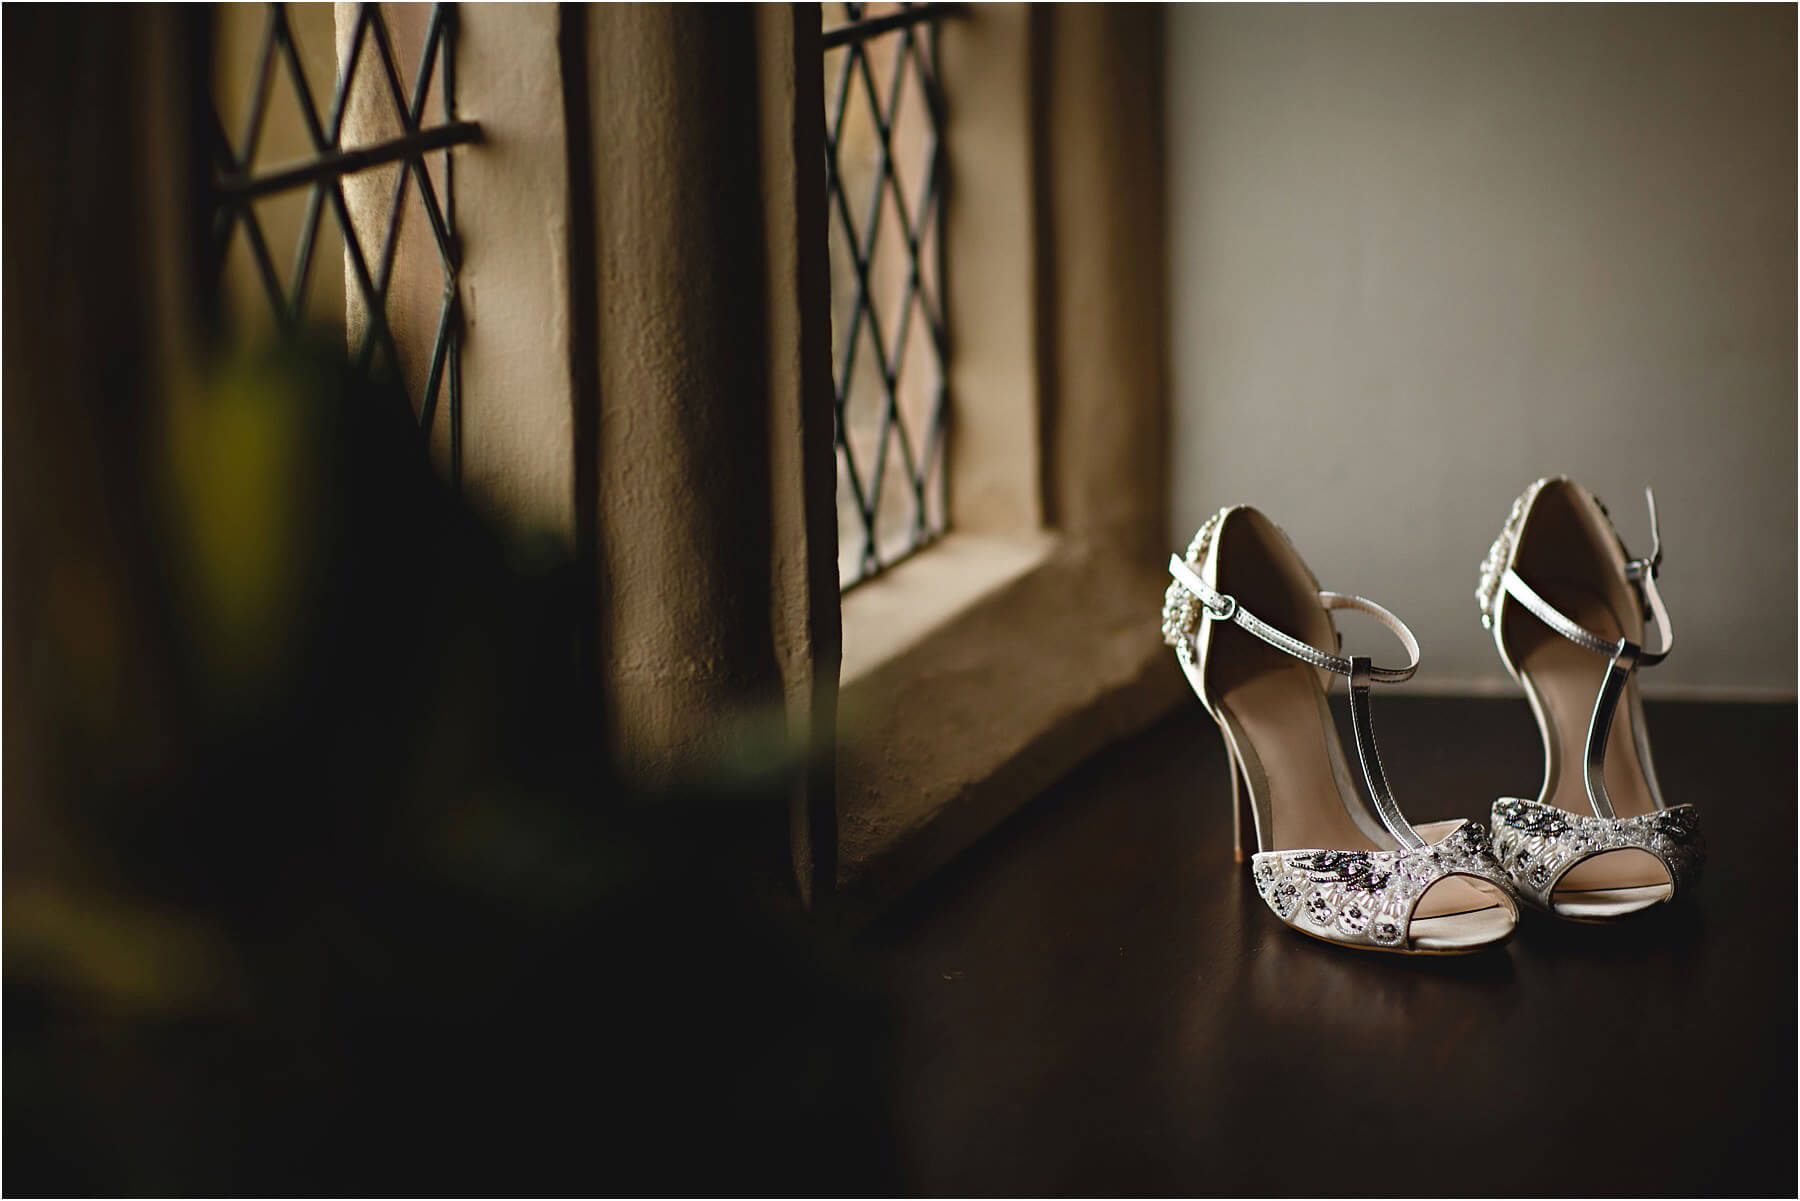 Shoes Every Bride Should Own For Her Post-Marriage Life